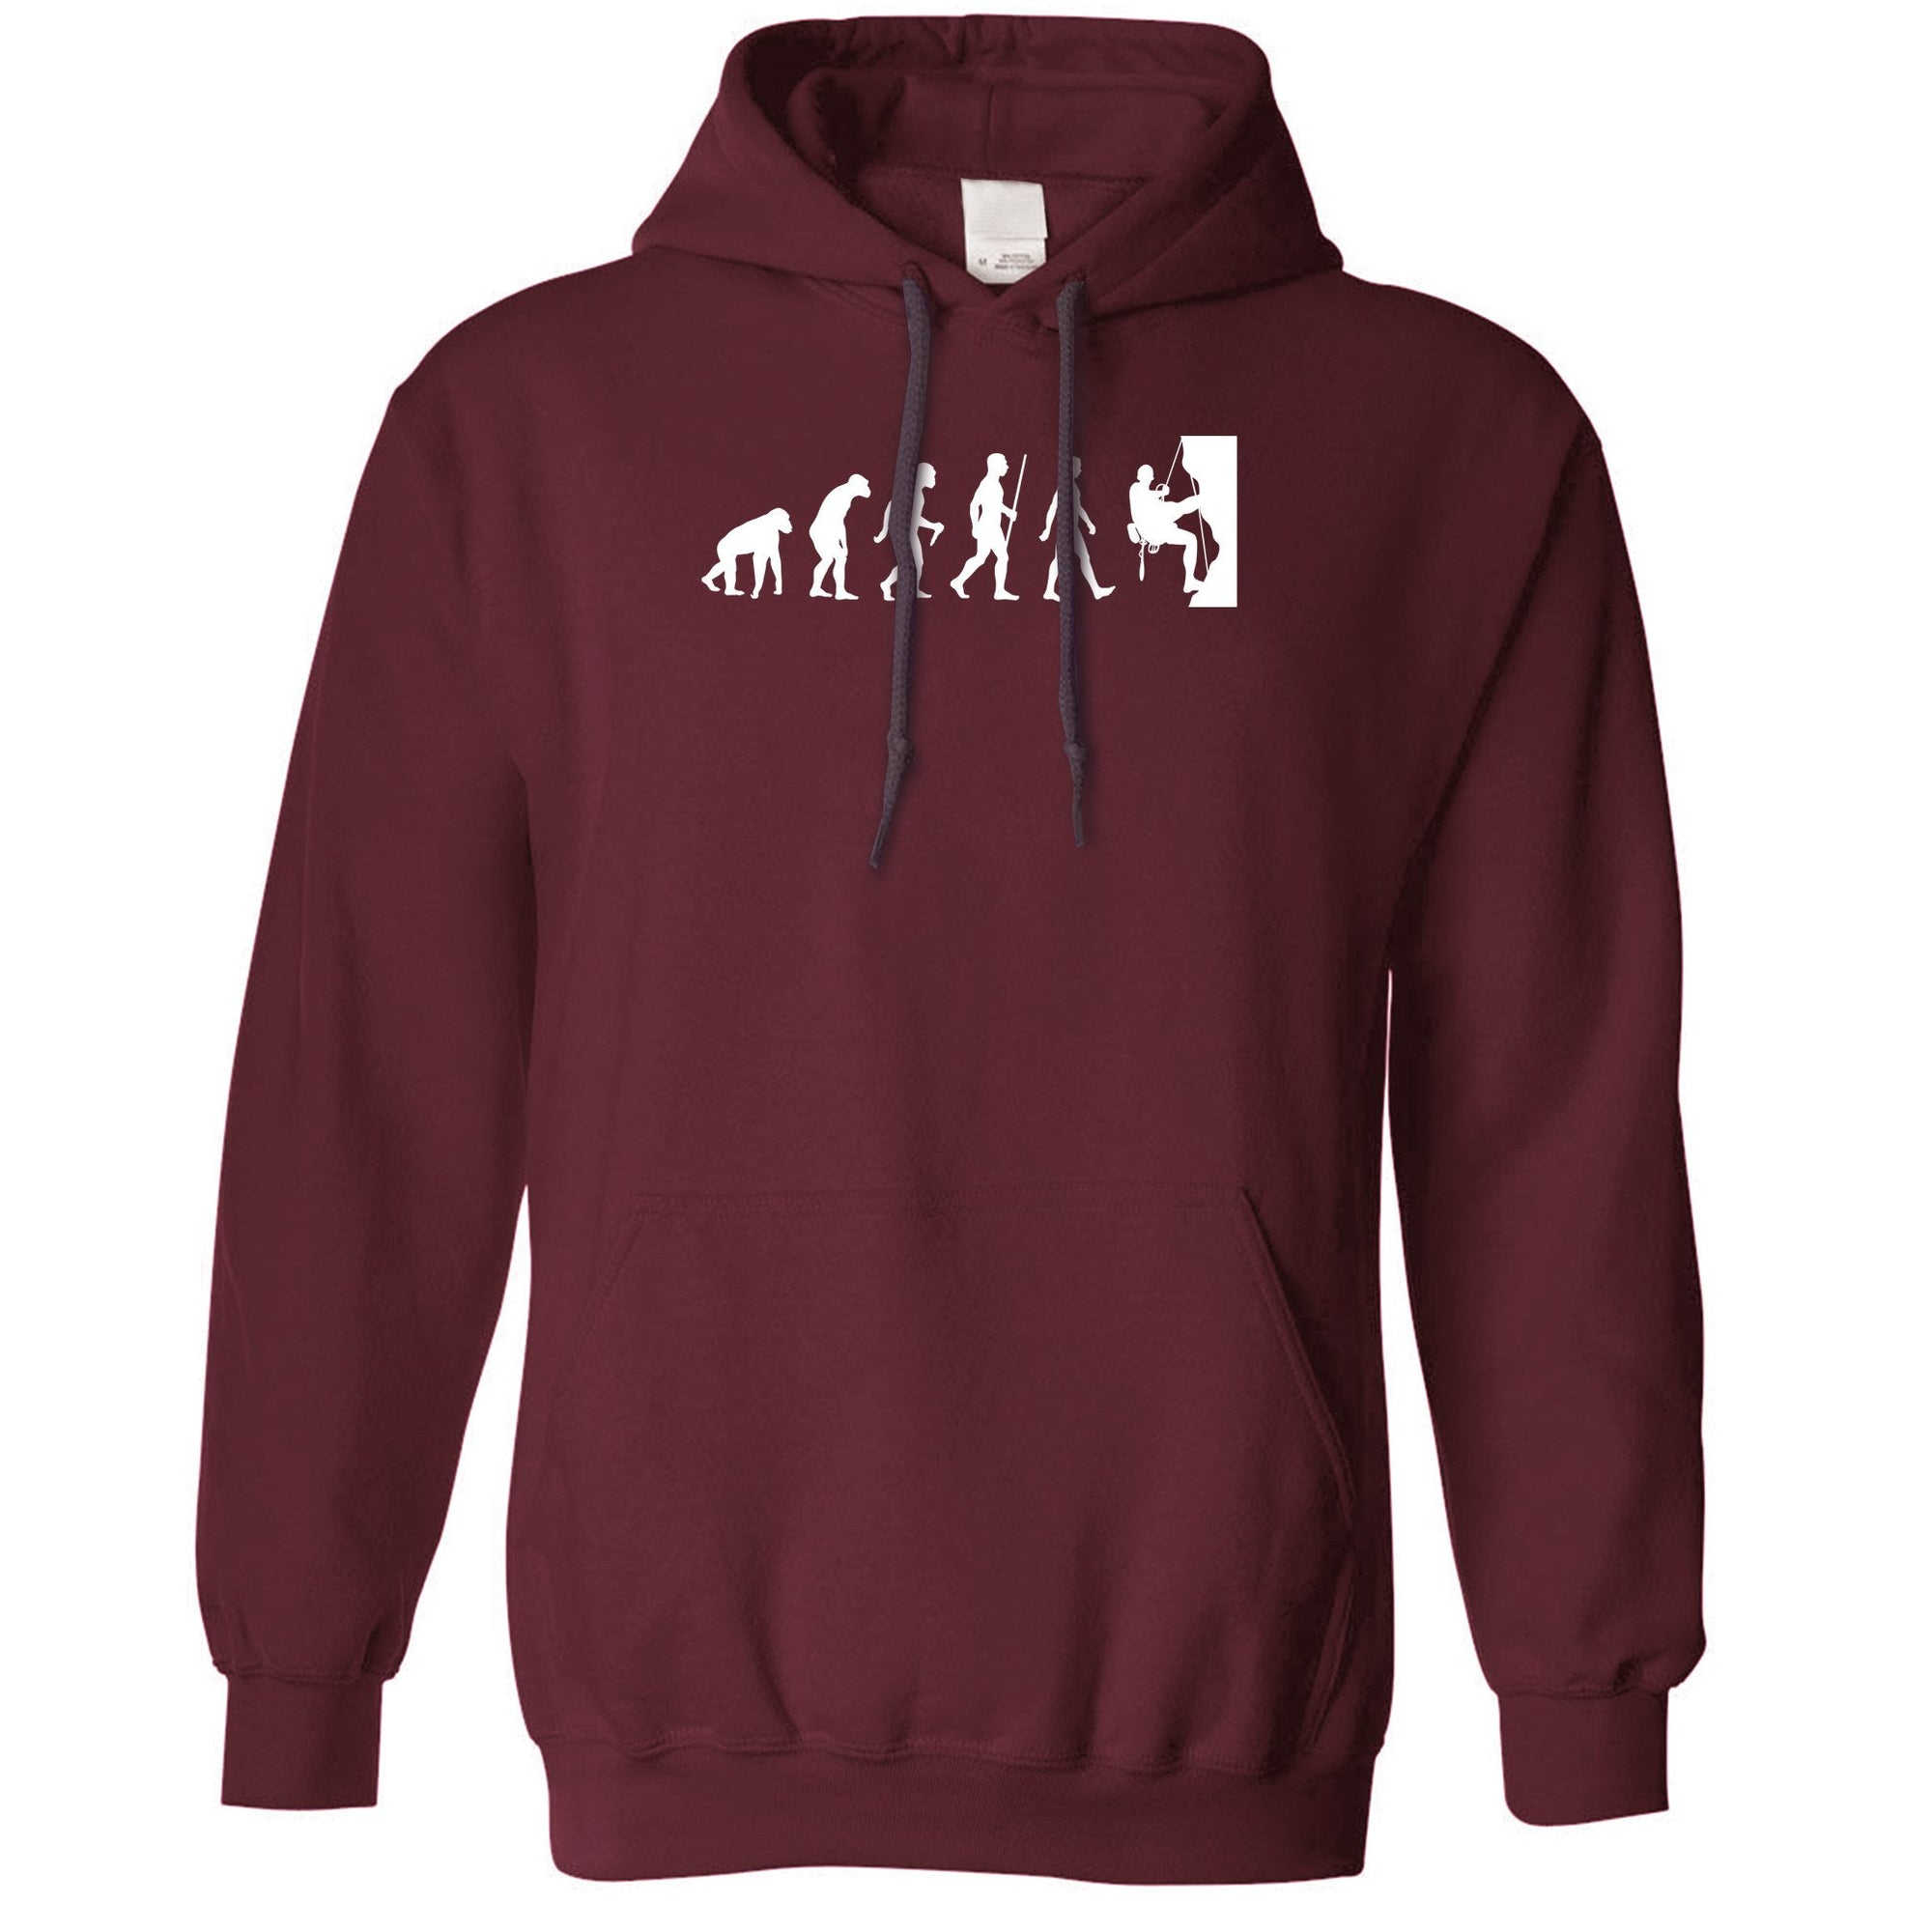 Sports Hoodie The Evolution Of Rock Climbing Hooded Jumper